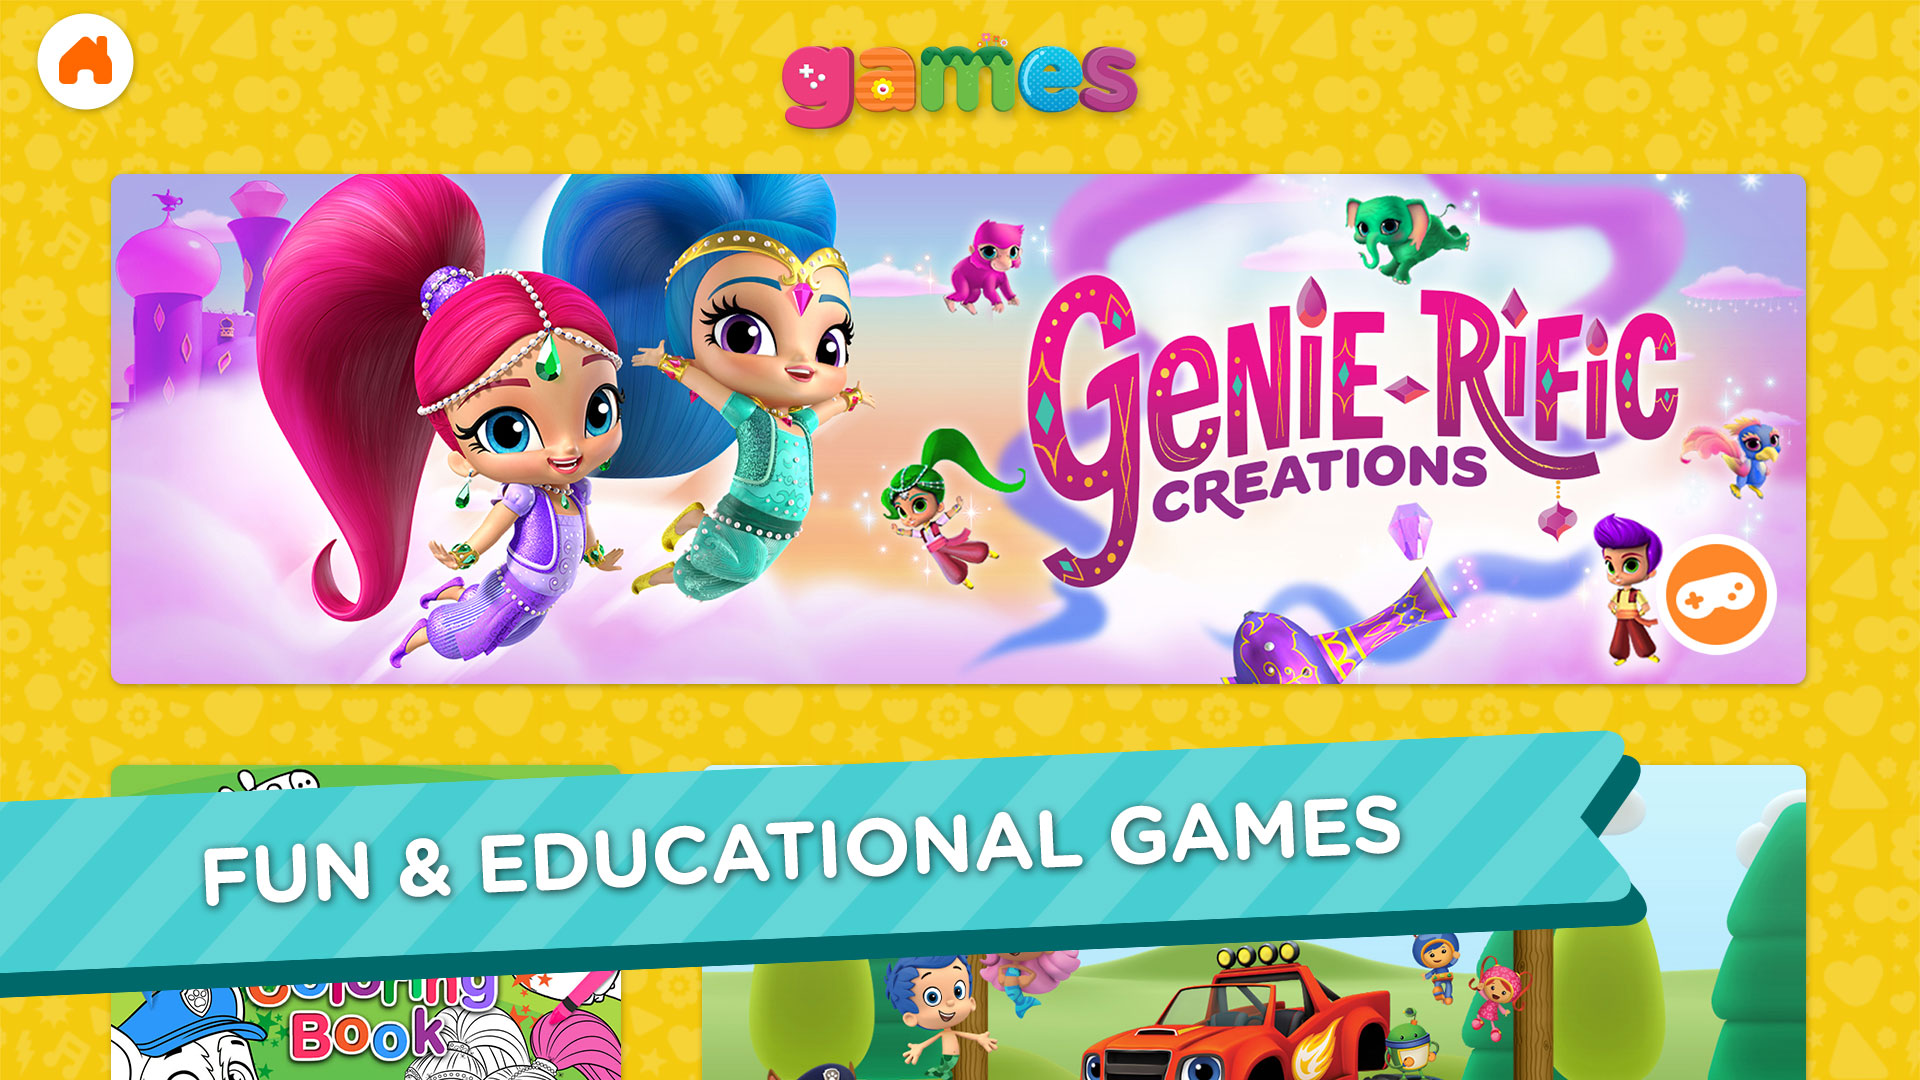 Pbs Kids Dora Games